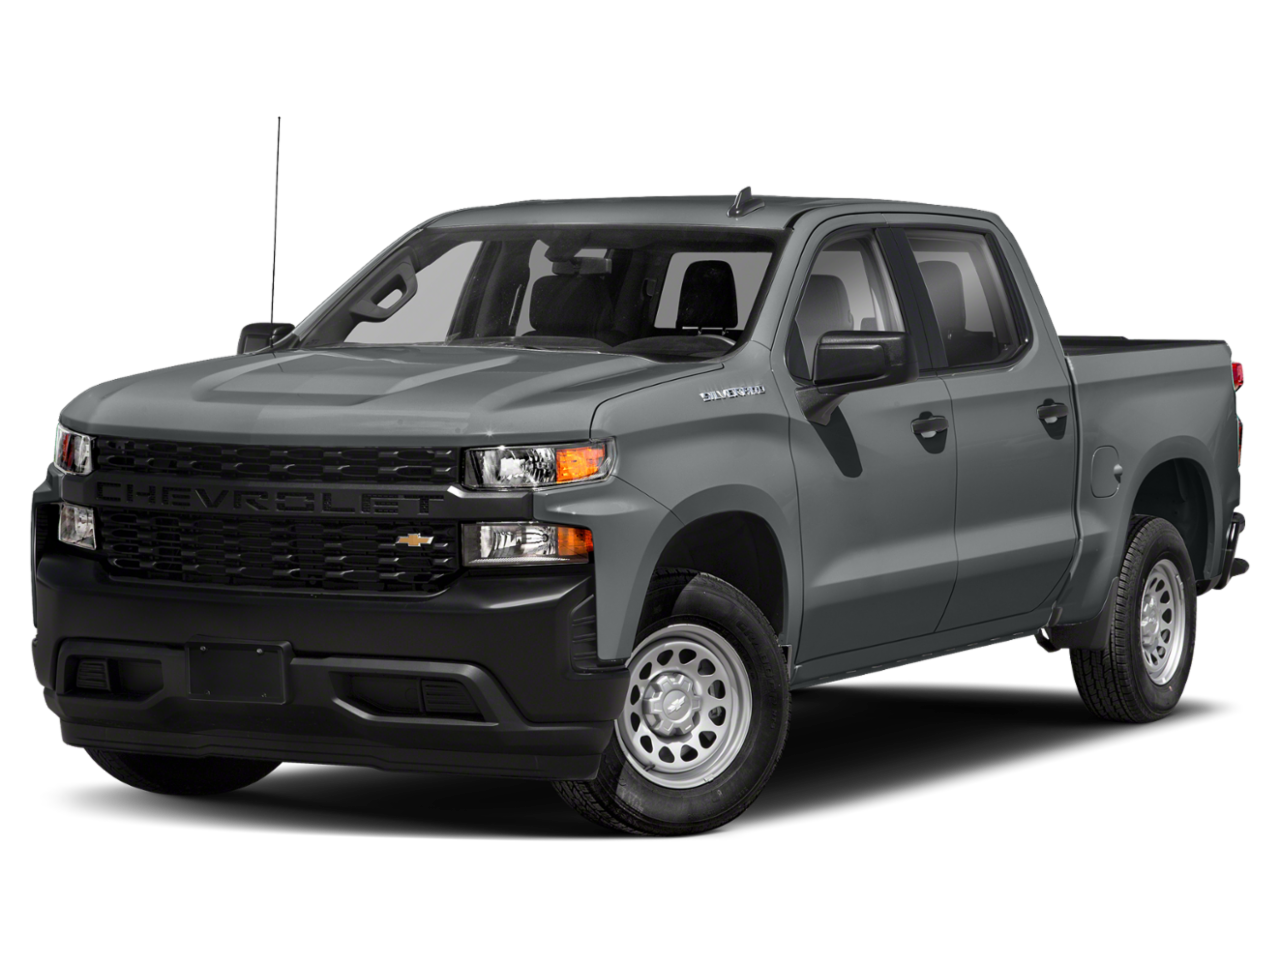 New 2020 Chevrolet Silverado 1500 From Your Terrell Tx Dealership Platinum Chevrolet